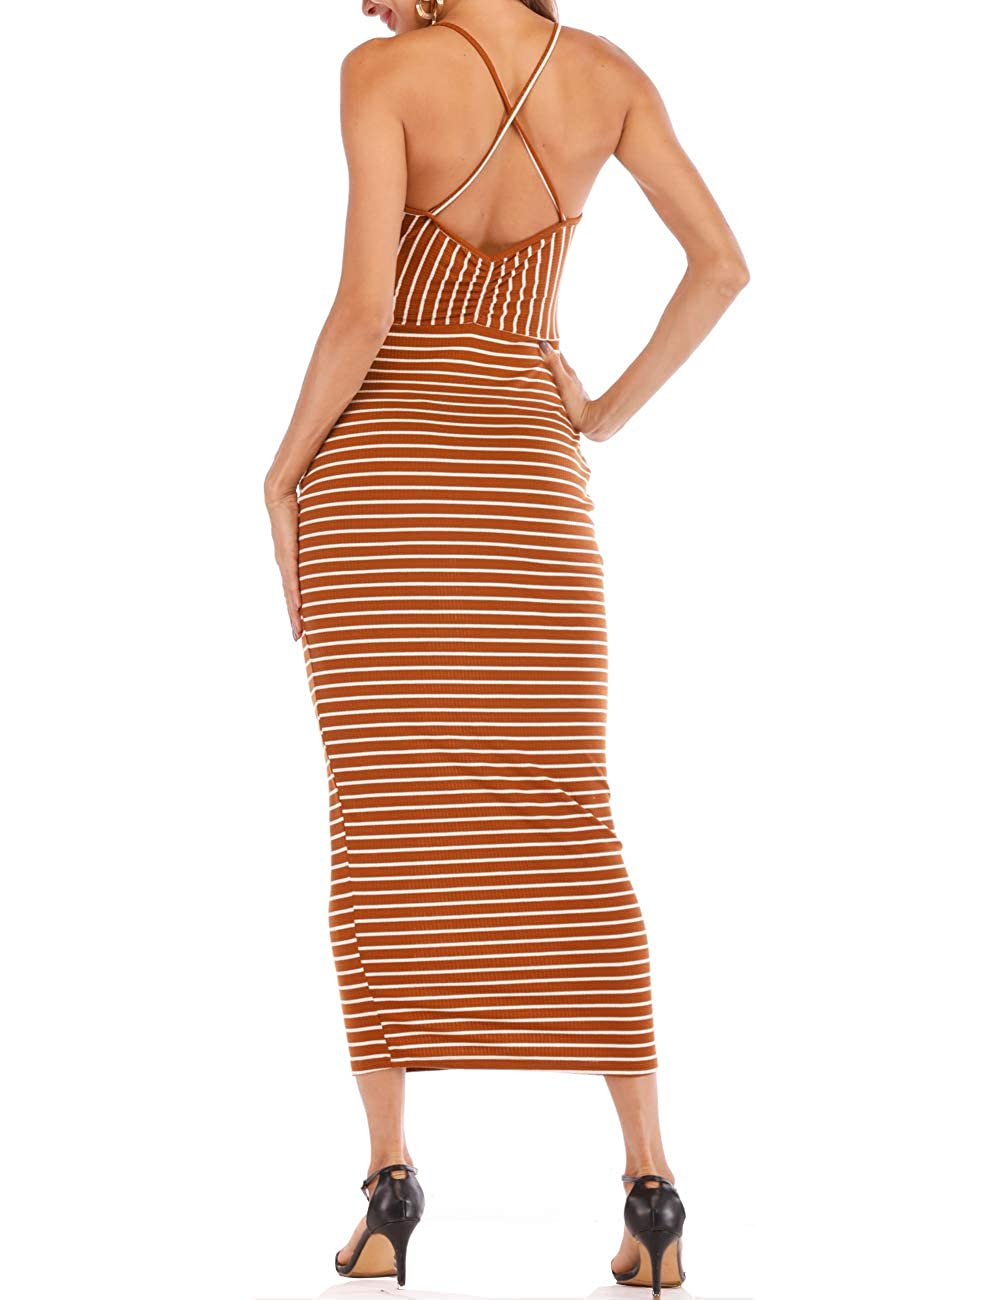 Brown and White Hioinieiy Women's Pit Striped Spaghetti Strap Boat Neck Bodycon Maxi Dress Maternity Hawaiian Sheath Long Dresses (SL)